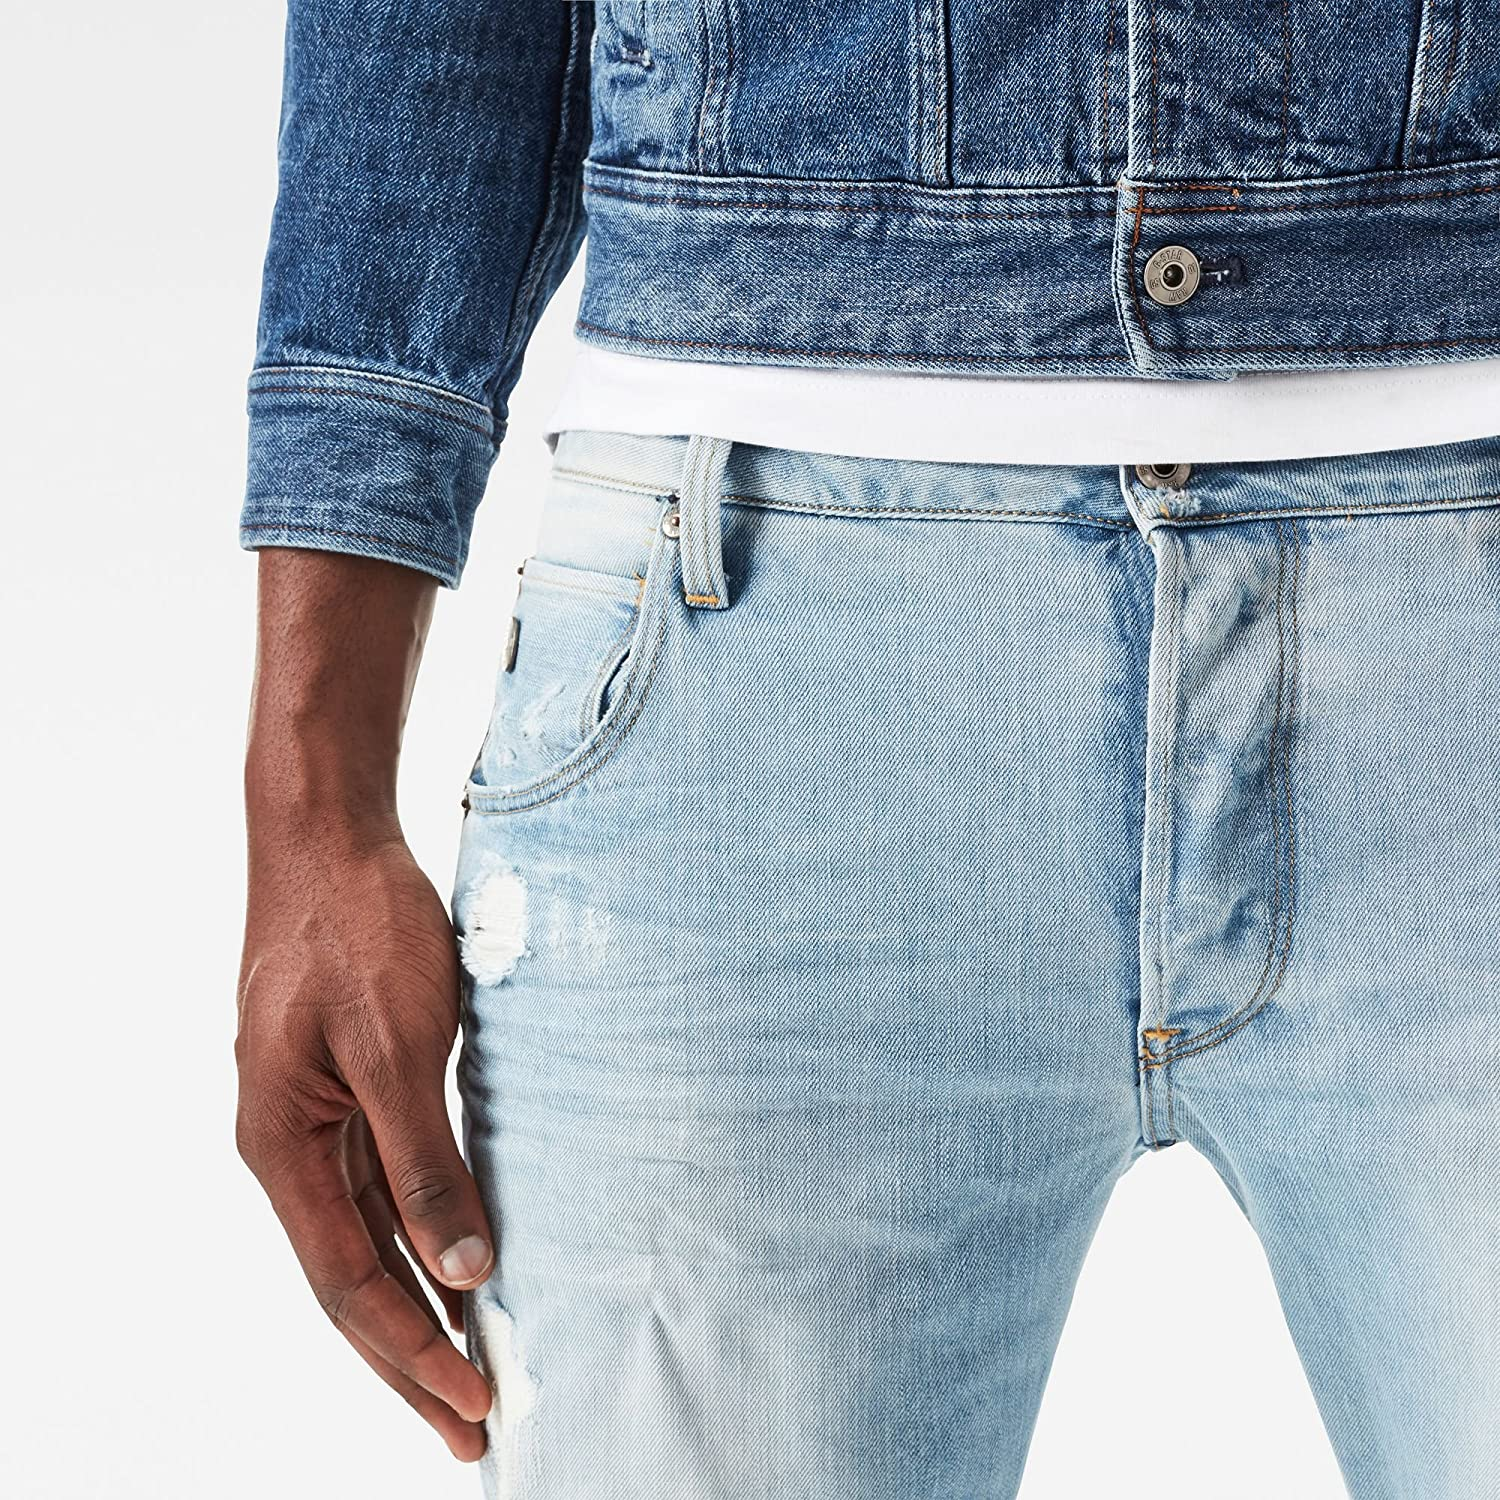 Amazon.com: G-Star Raw Arc 3d Slim-fit Jean hombre en Wisk ...